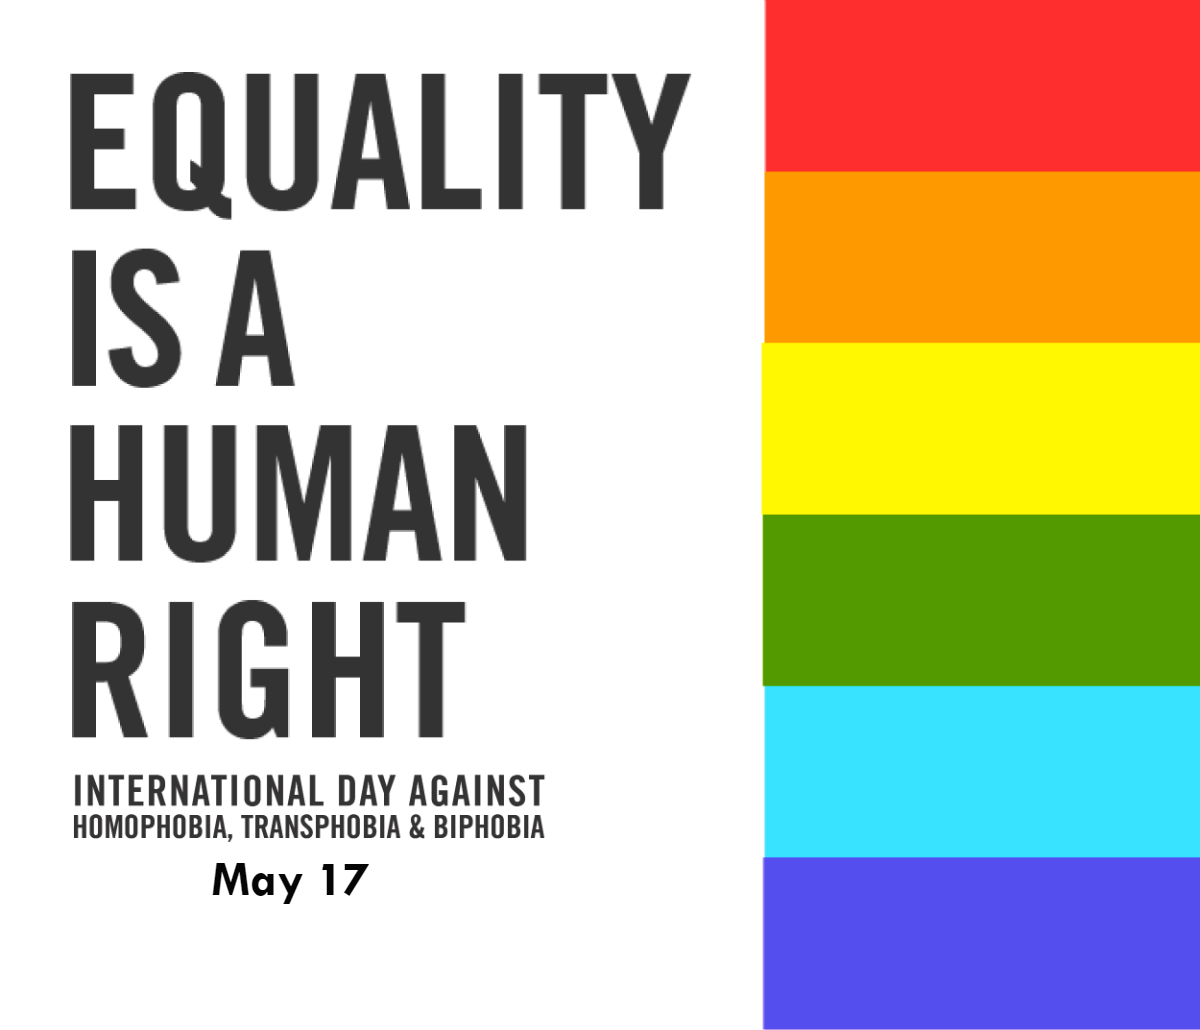 International Day Against Homophobia, Transphobia and Biphobia – May 17